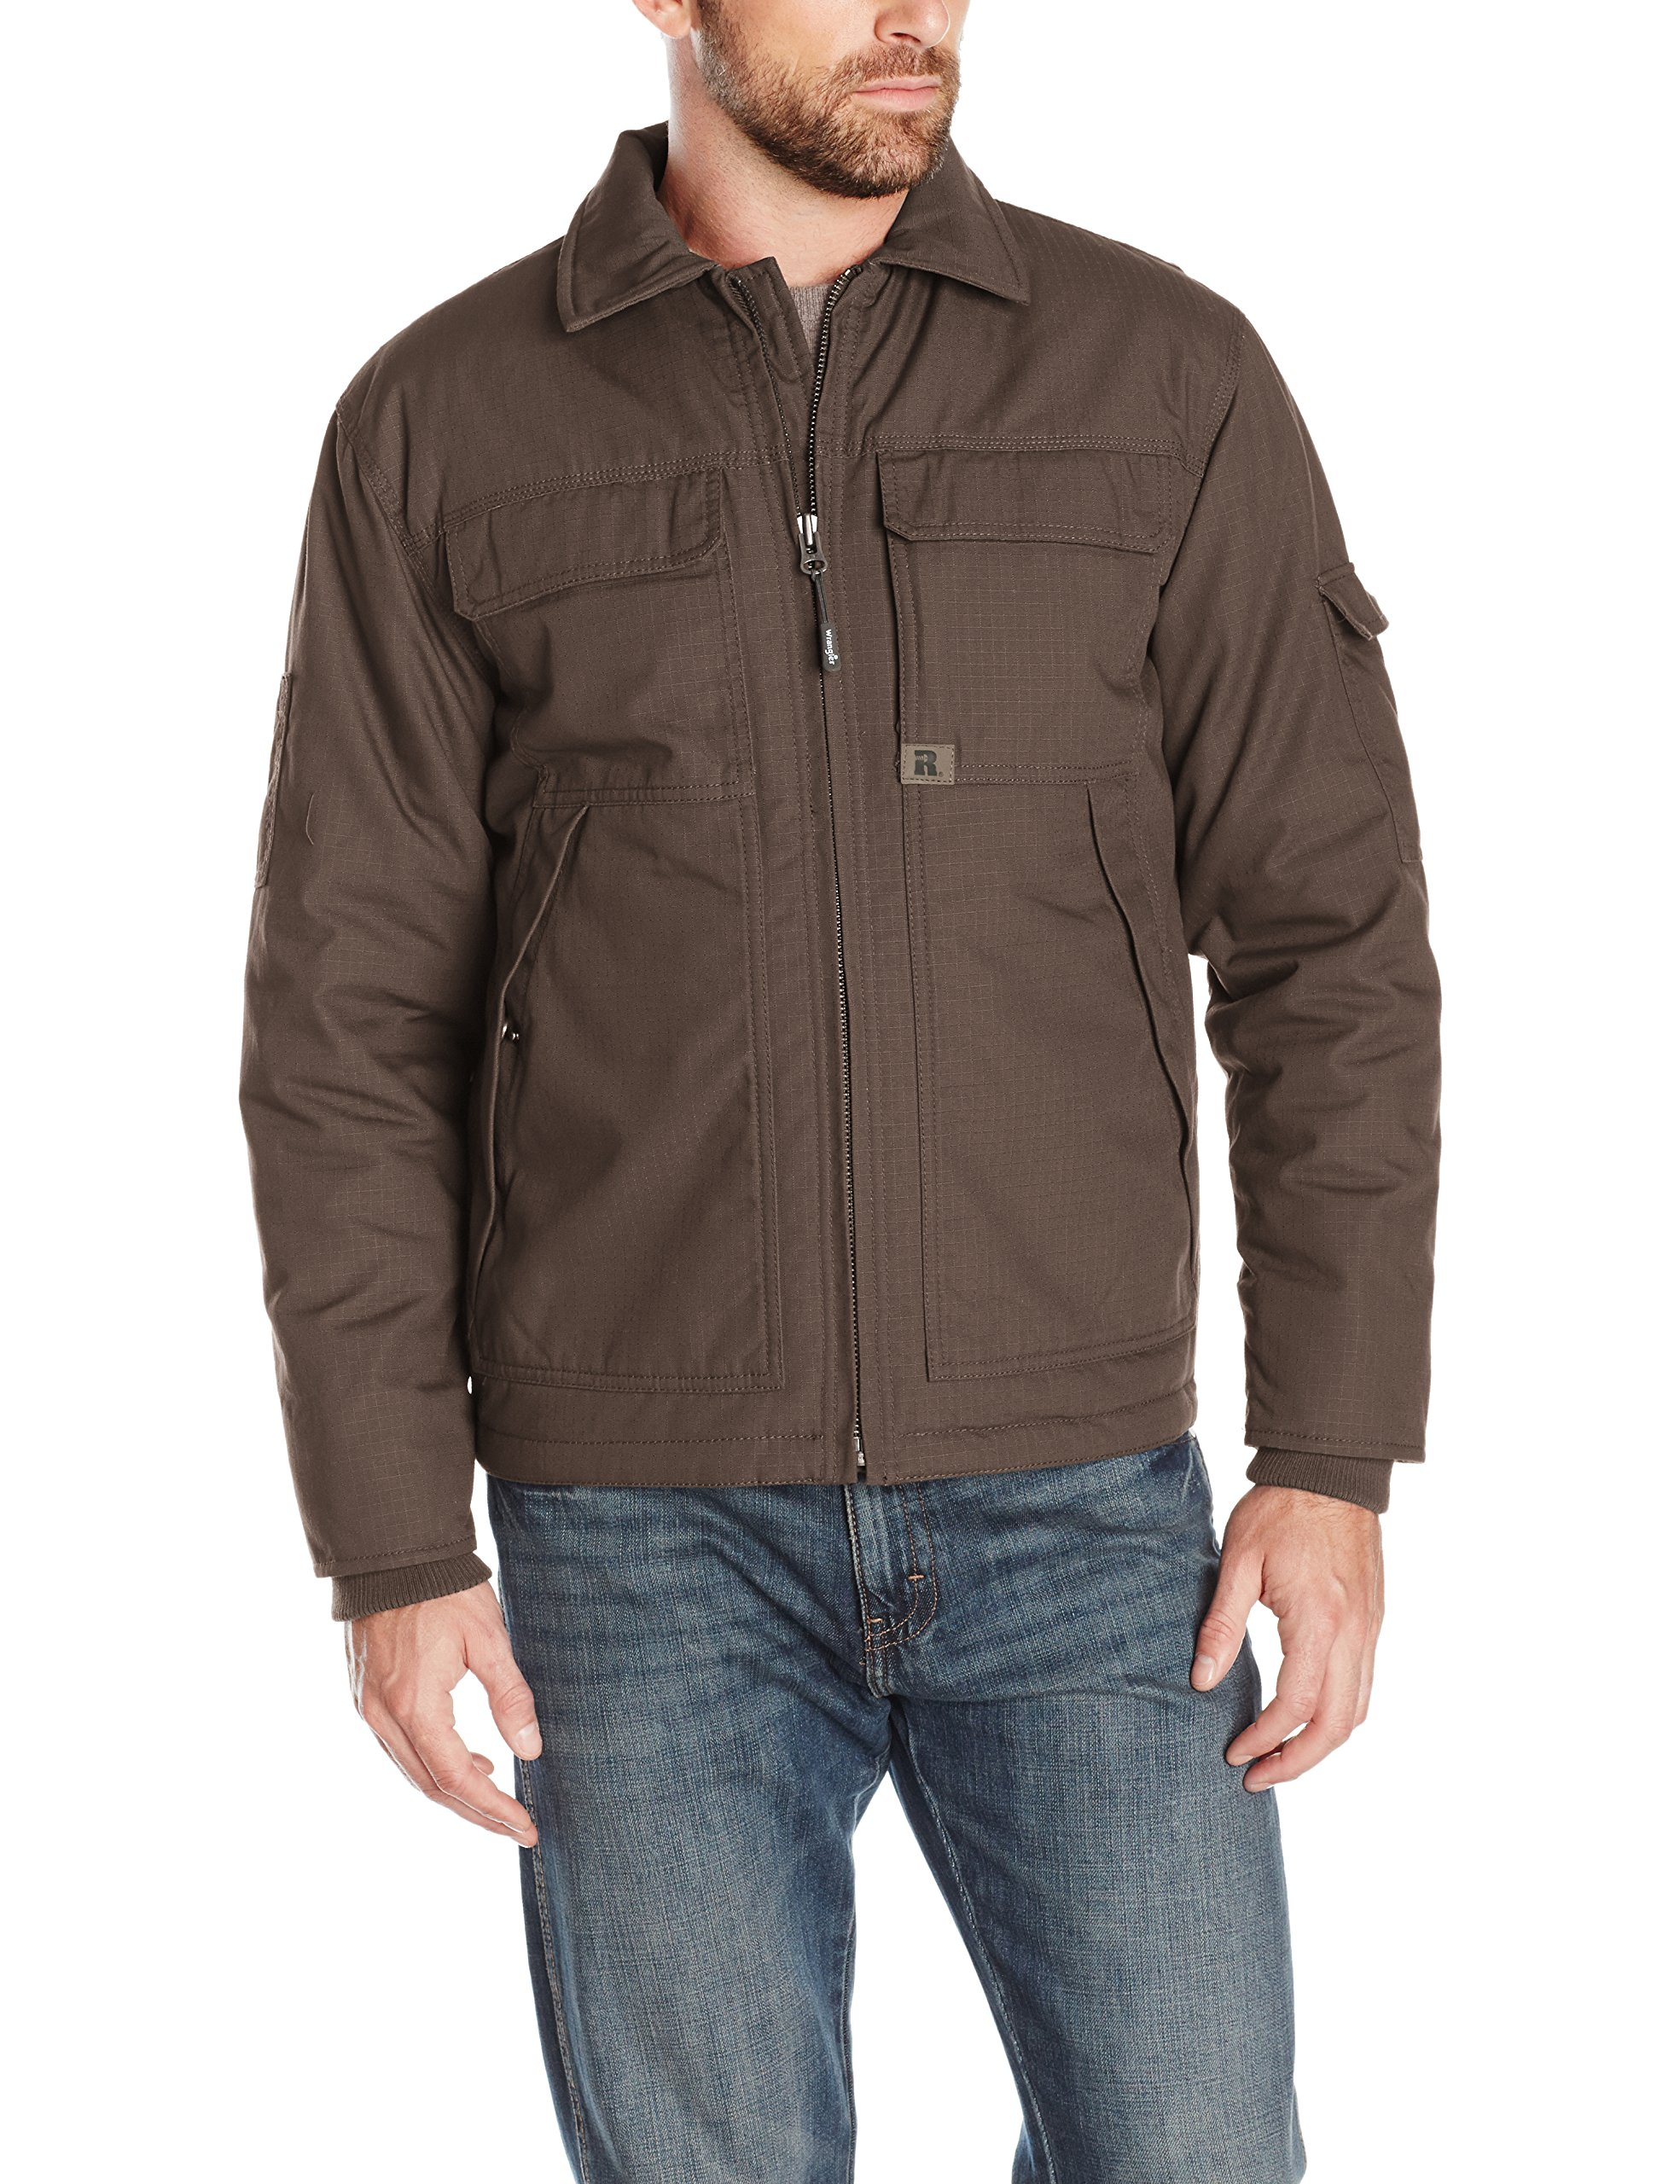 Wrangler Riggs Workwear Men's Ranger Jacket, Dark Brown, XX-Large